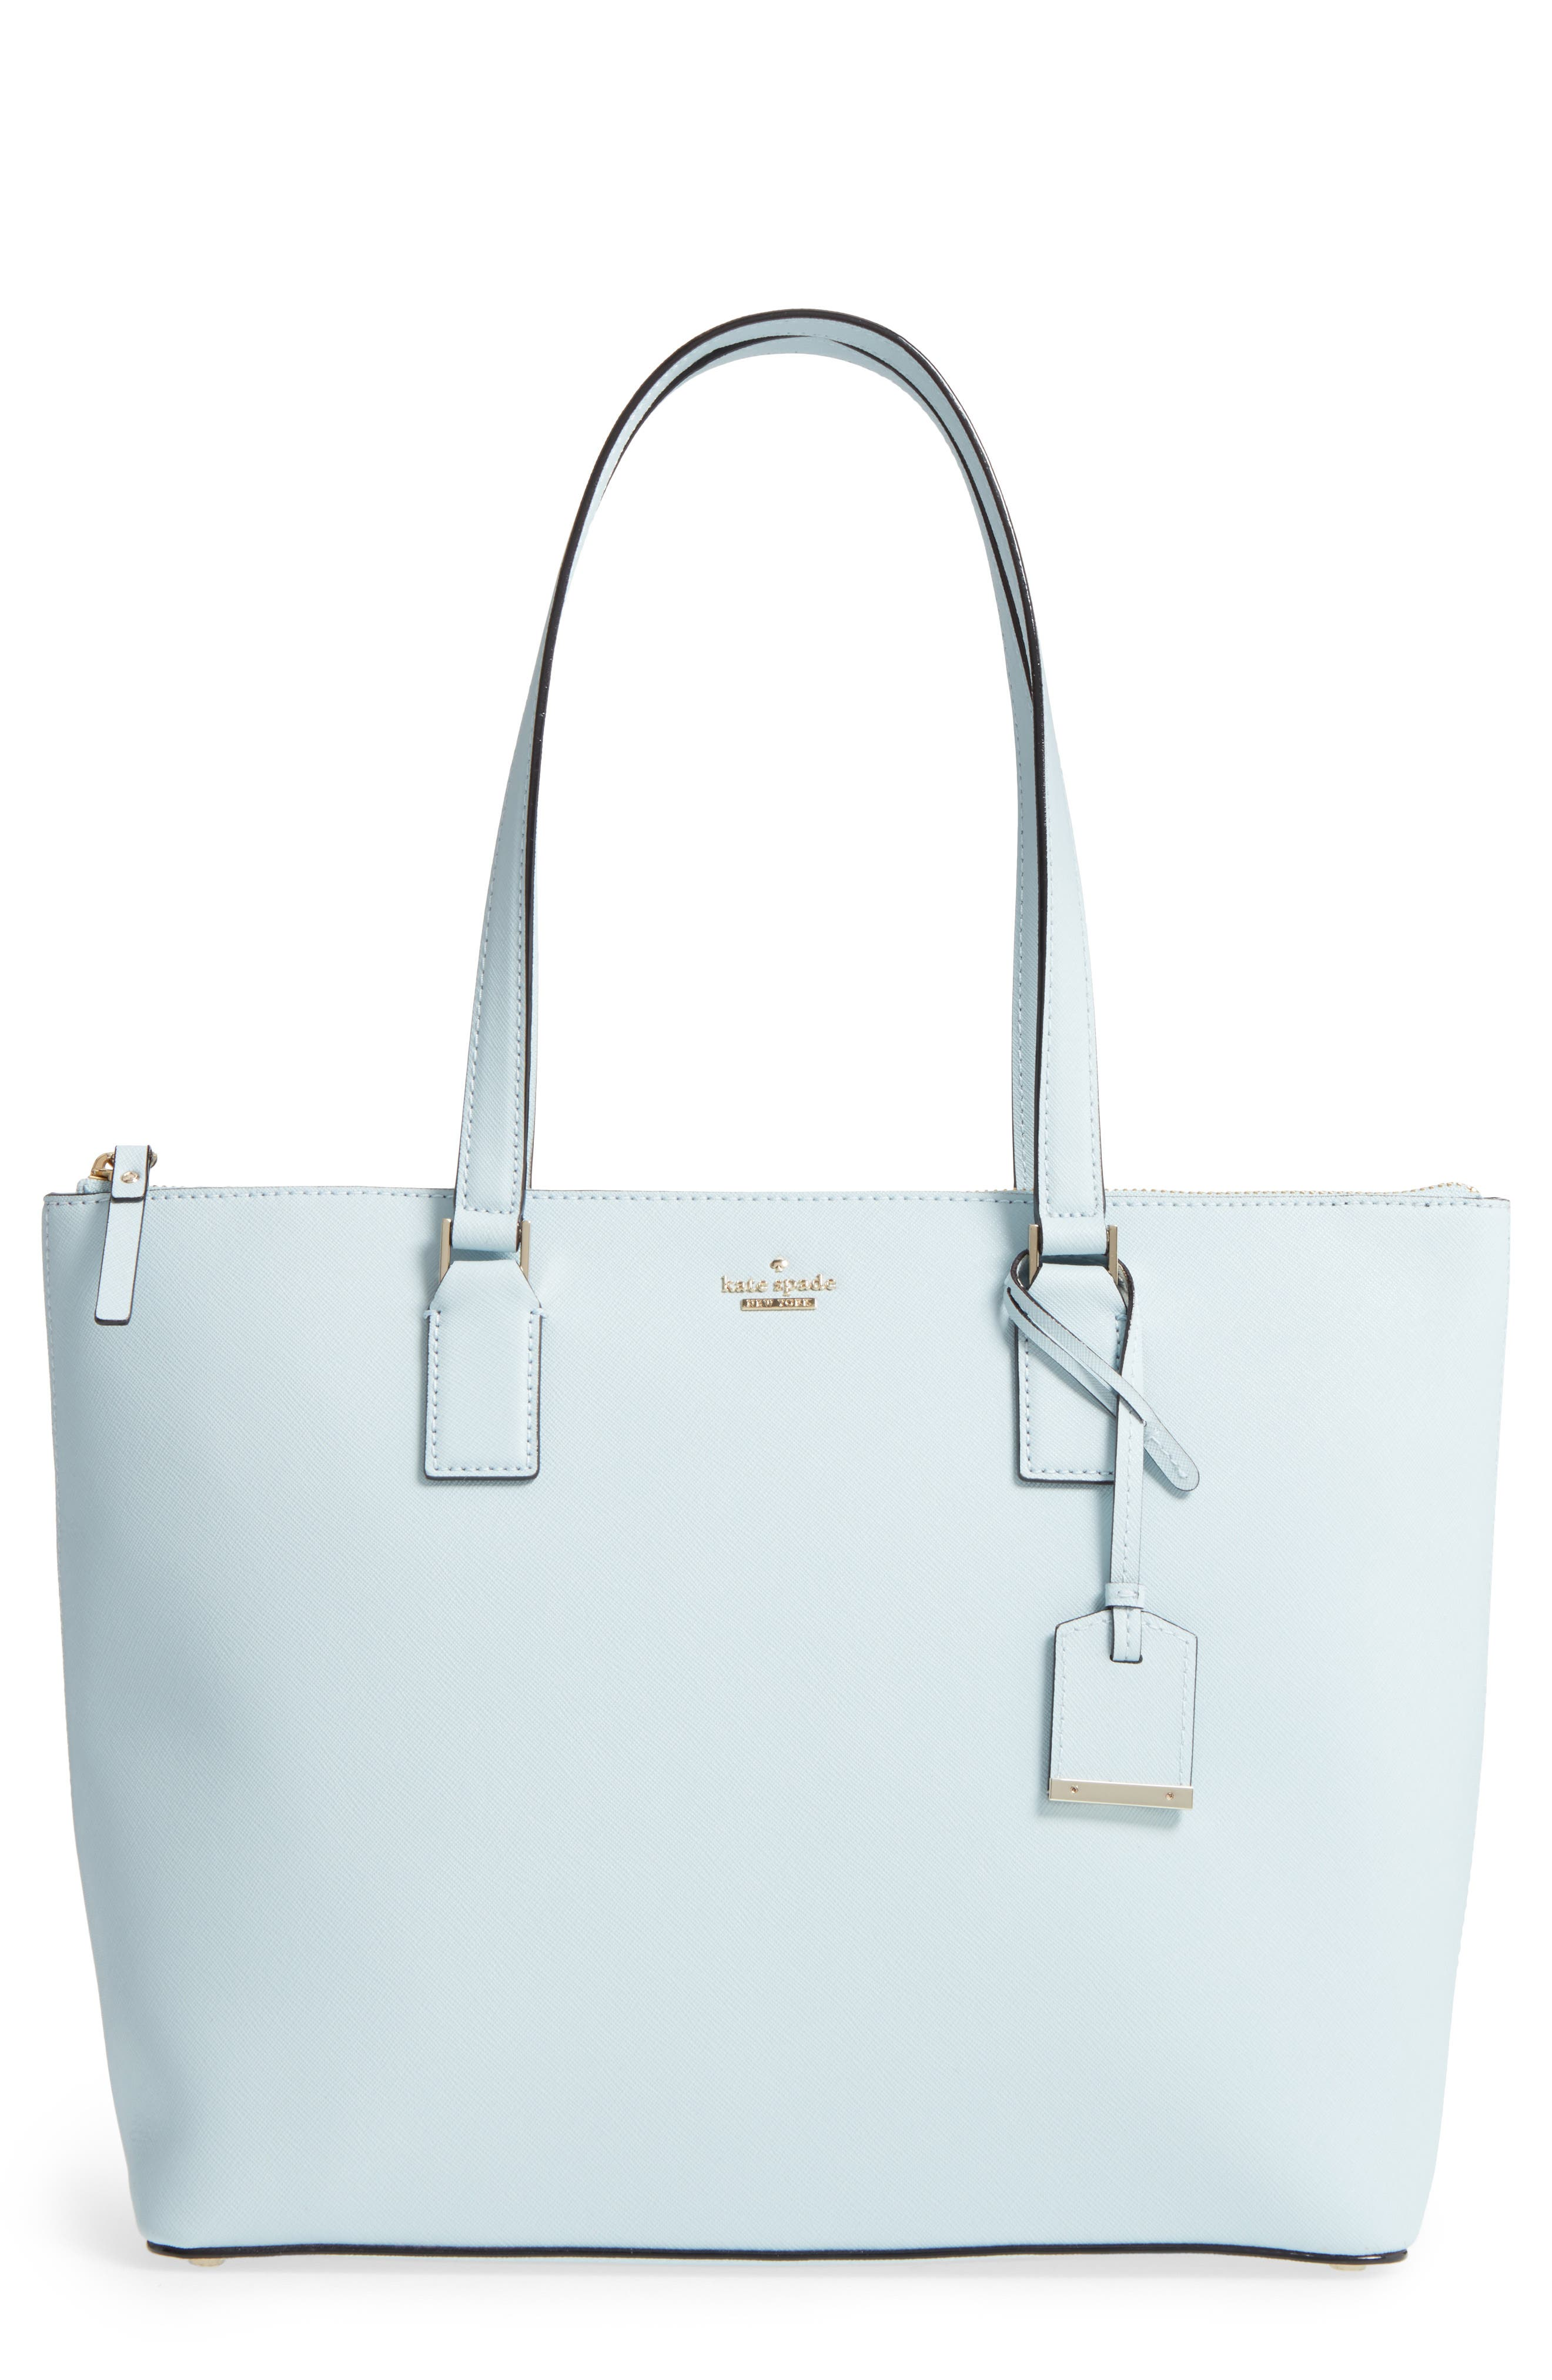 'cameron street - lucie' tote,                         Main,                         color, Shimmer Blue